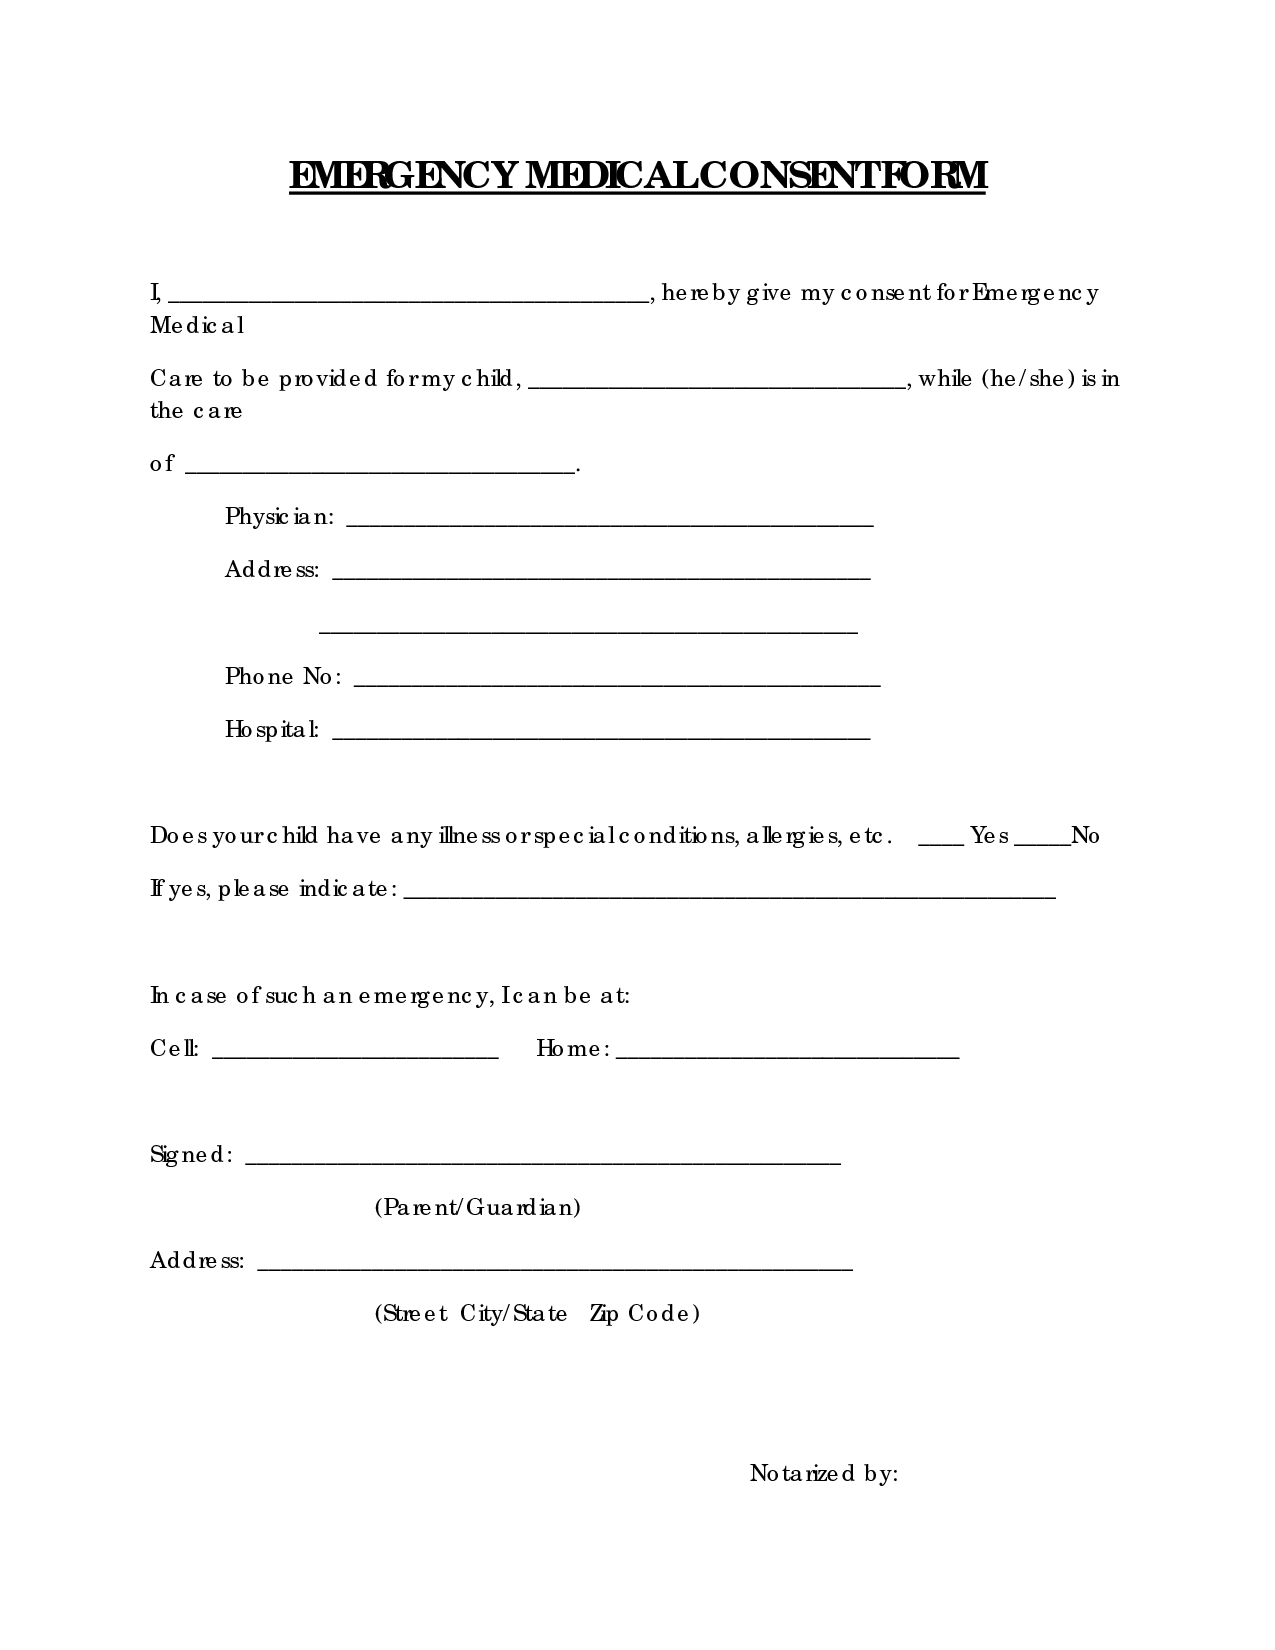 Free Printable Medical Consent Form | EMERGENCY MEDICAL CONSENT ...